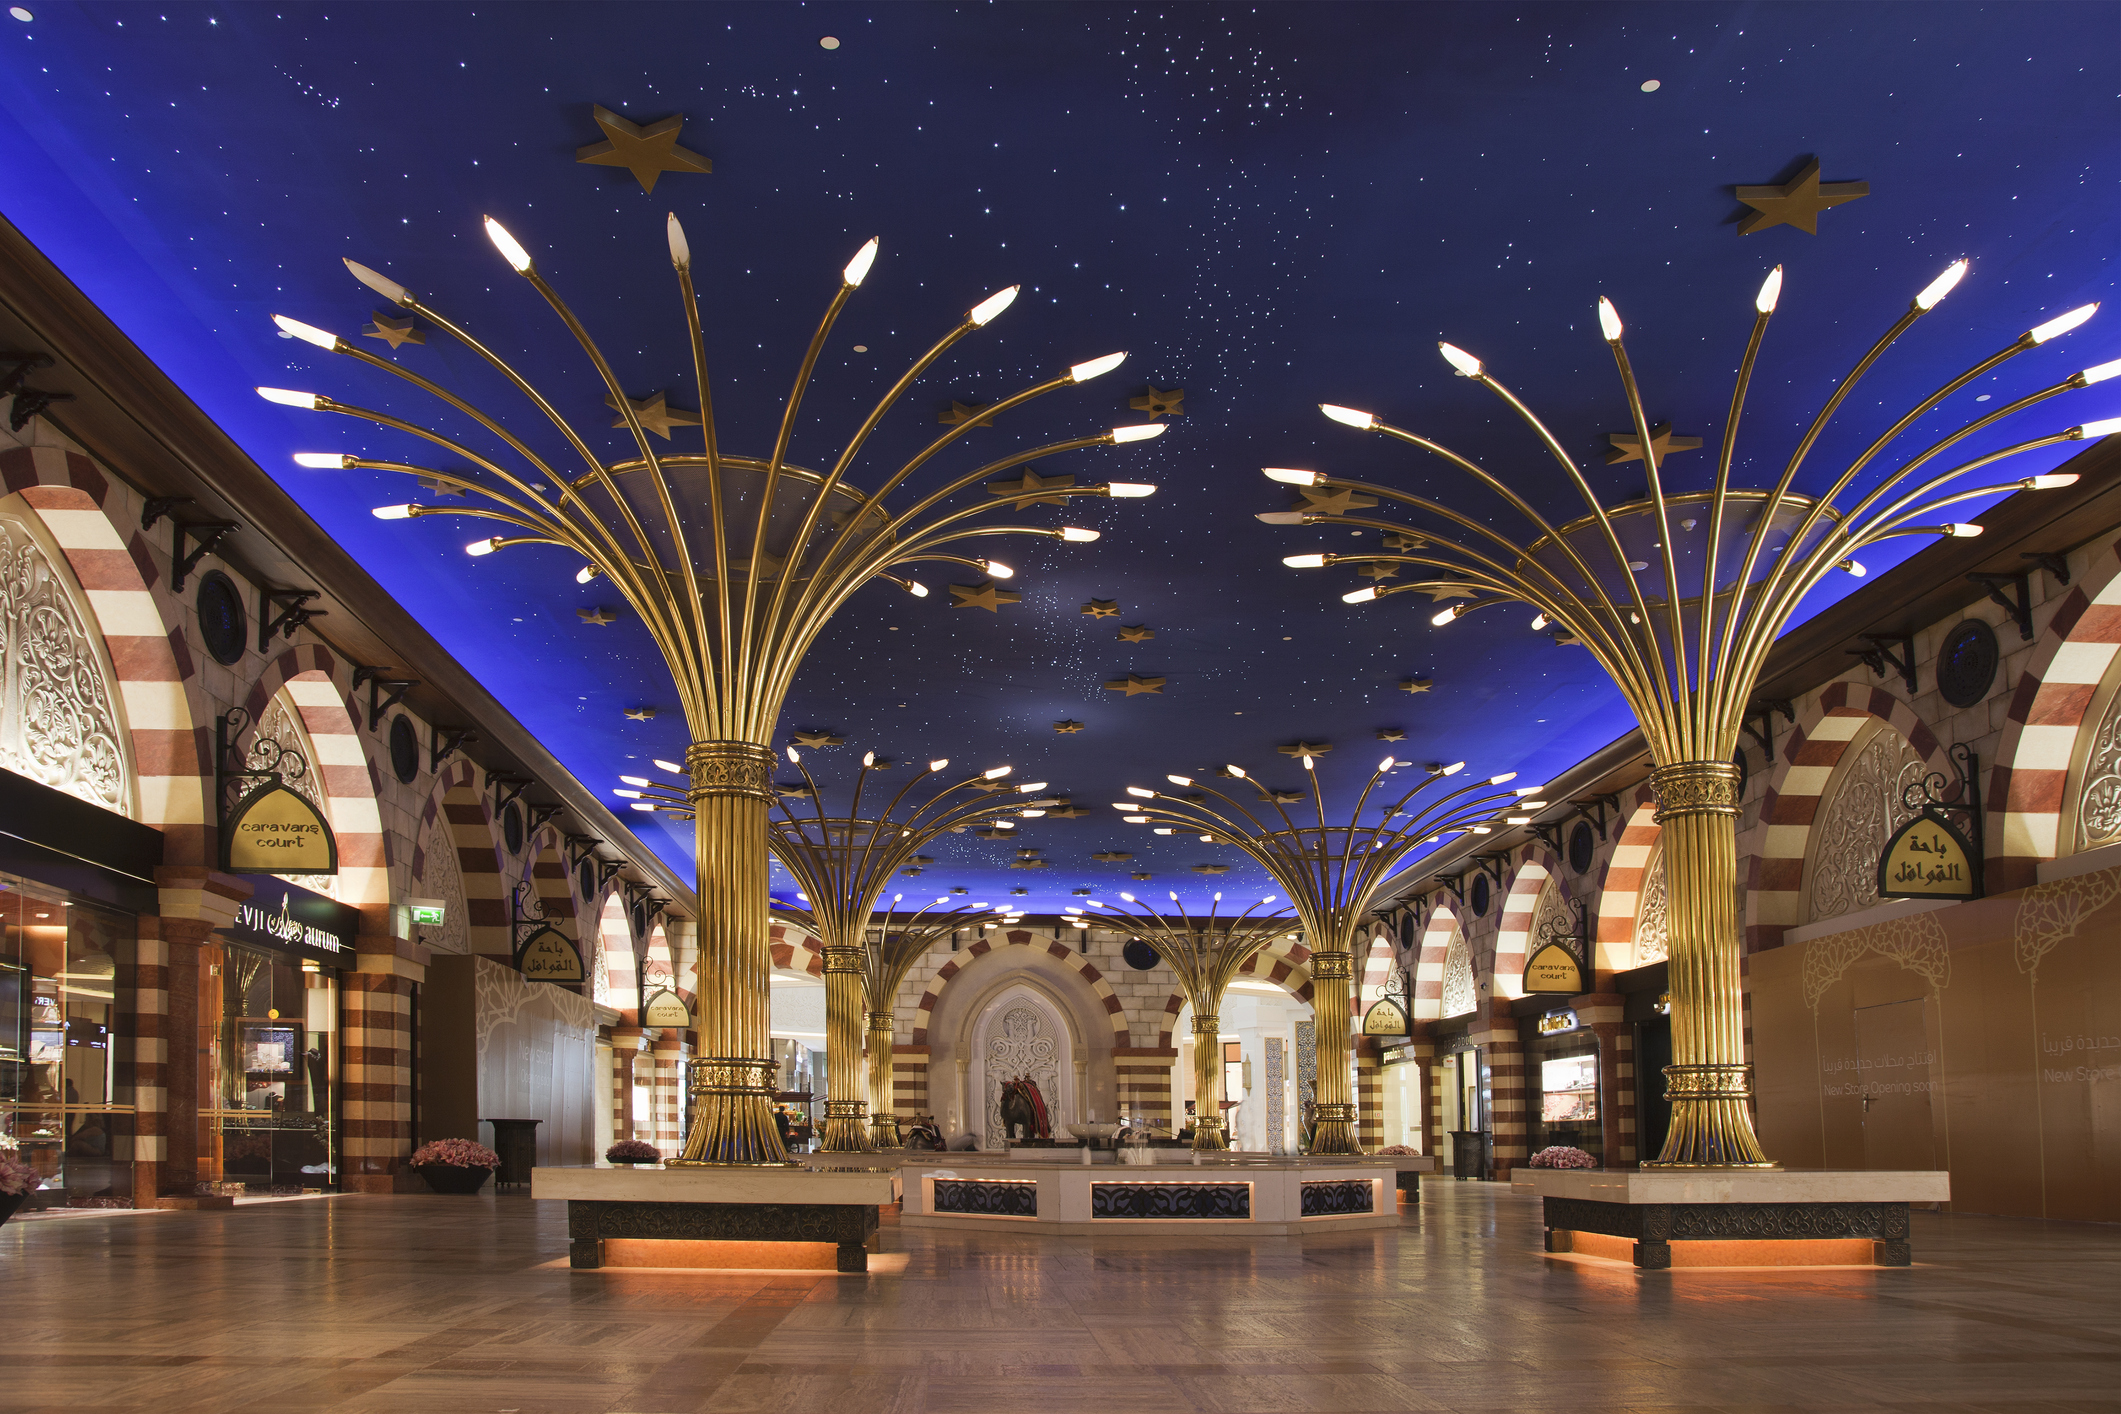 The dubai mall has a new gps feature on its app to help customers the dubai mall is the worlds largest shopping mall image buena vista images sciox Choice Image